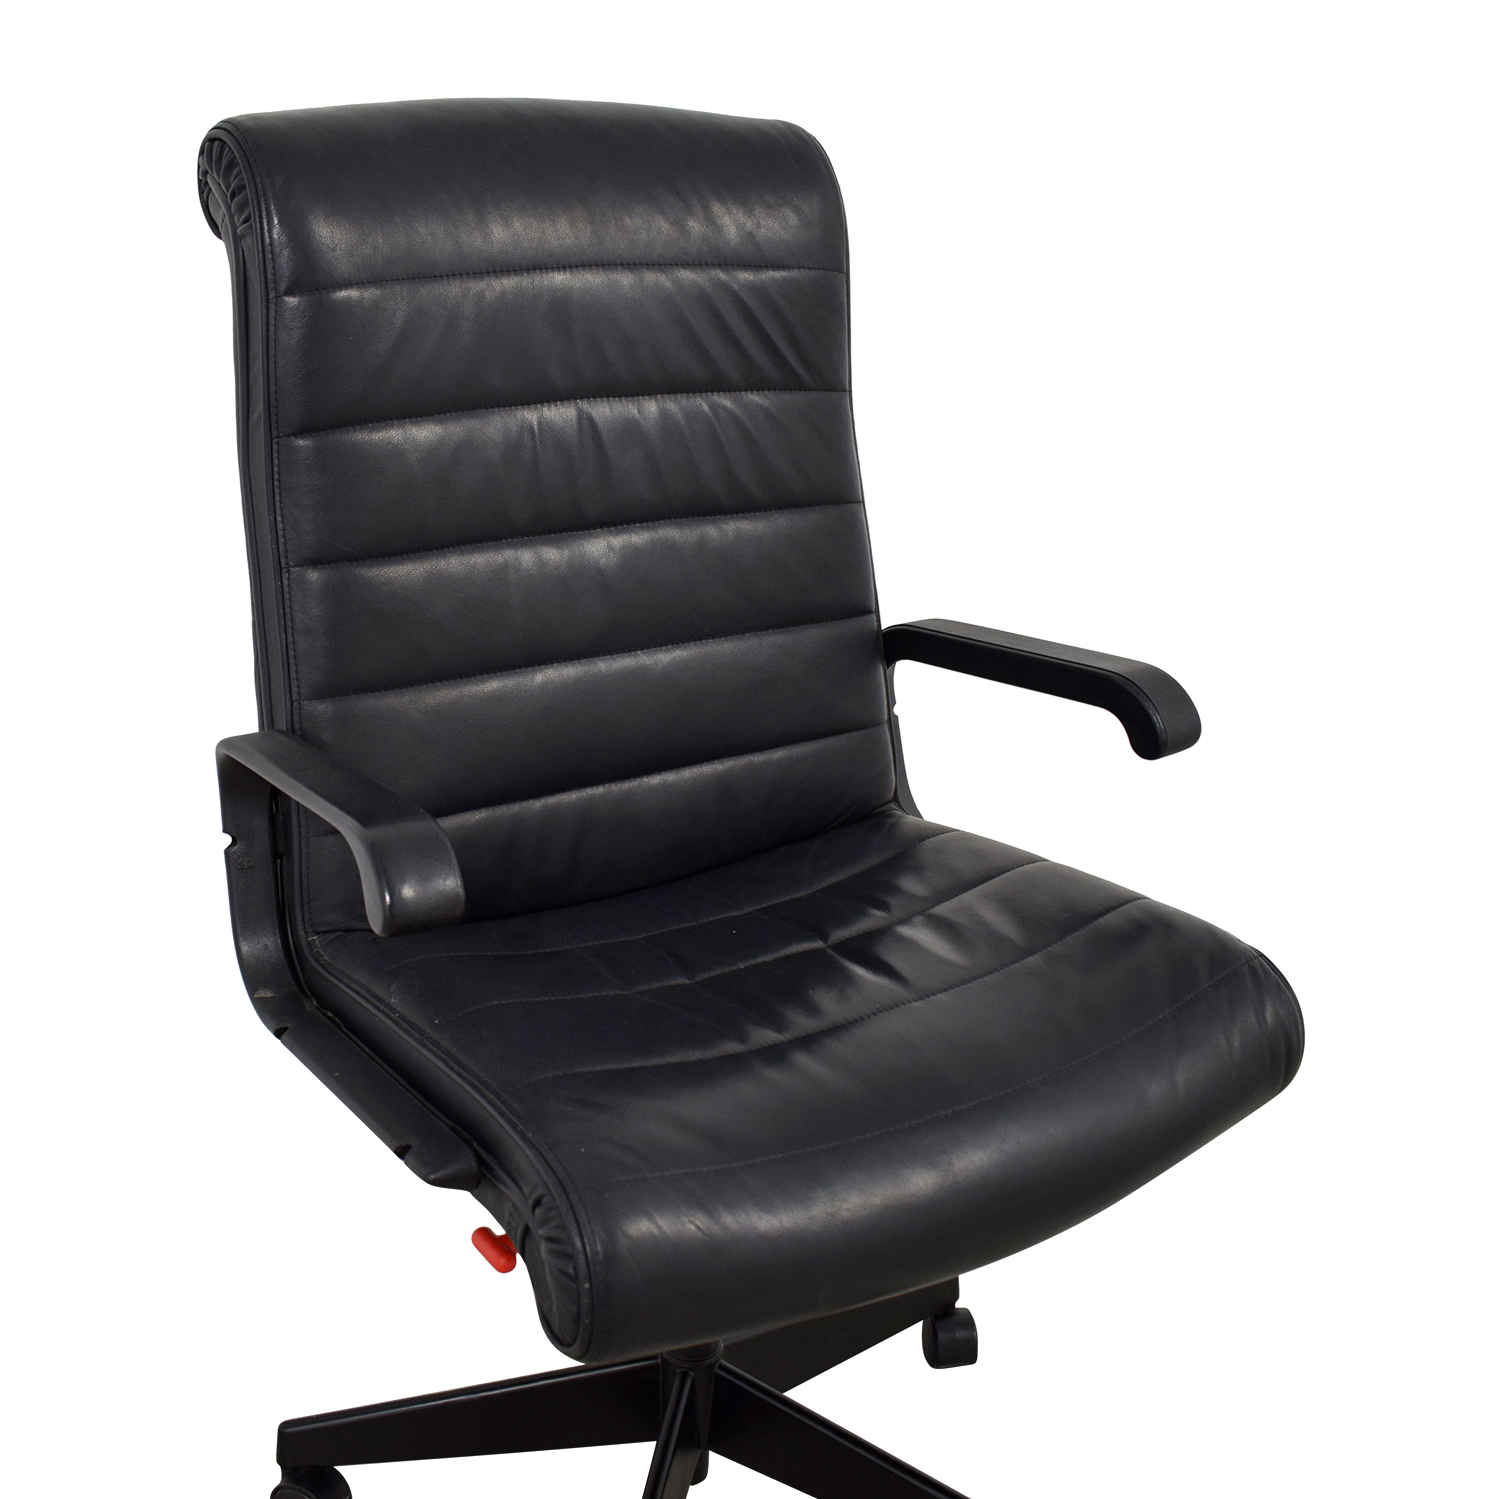 buy  Black Leather Office Chair online